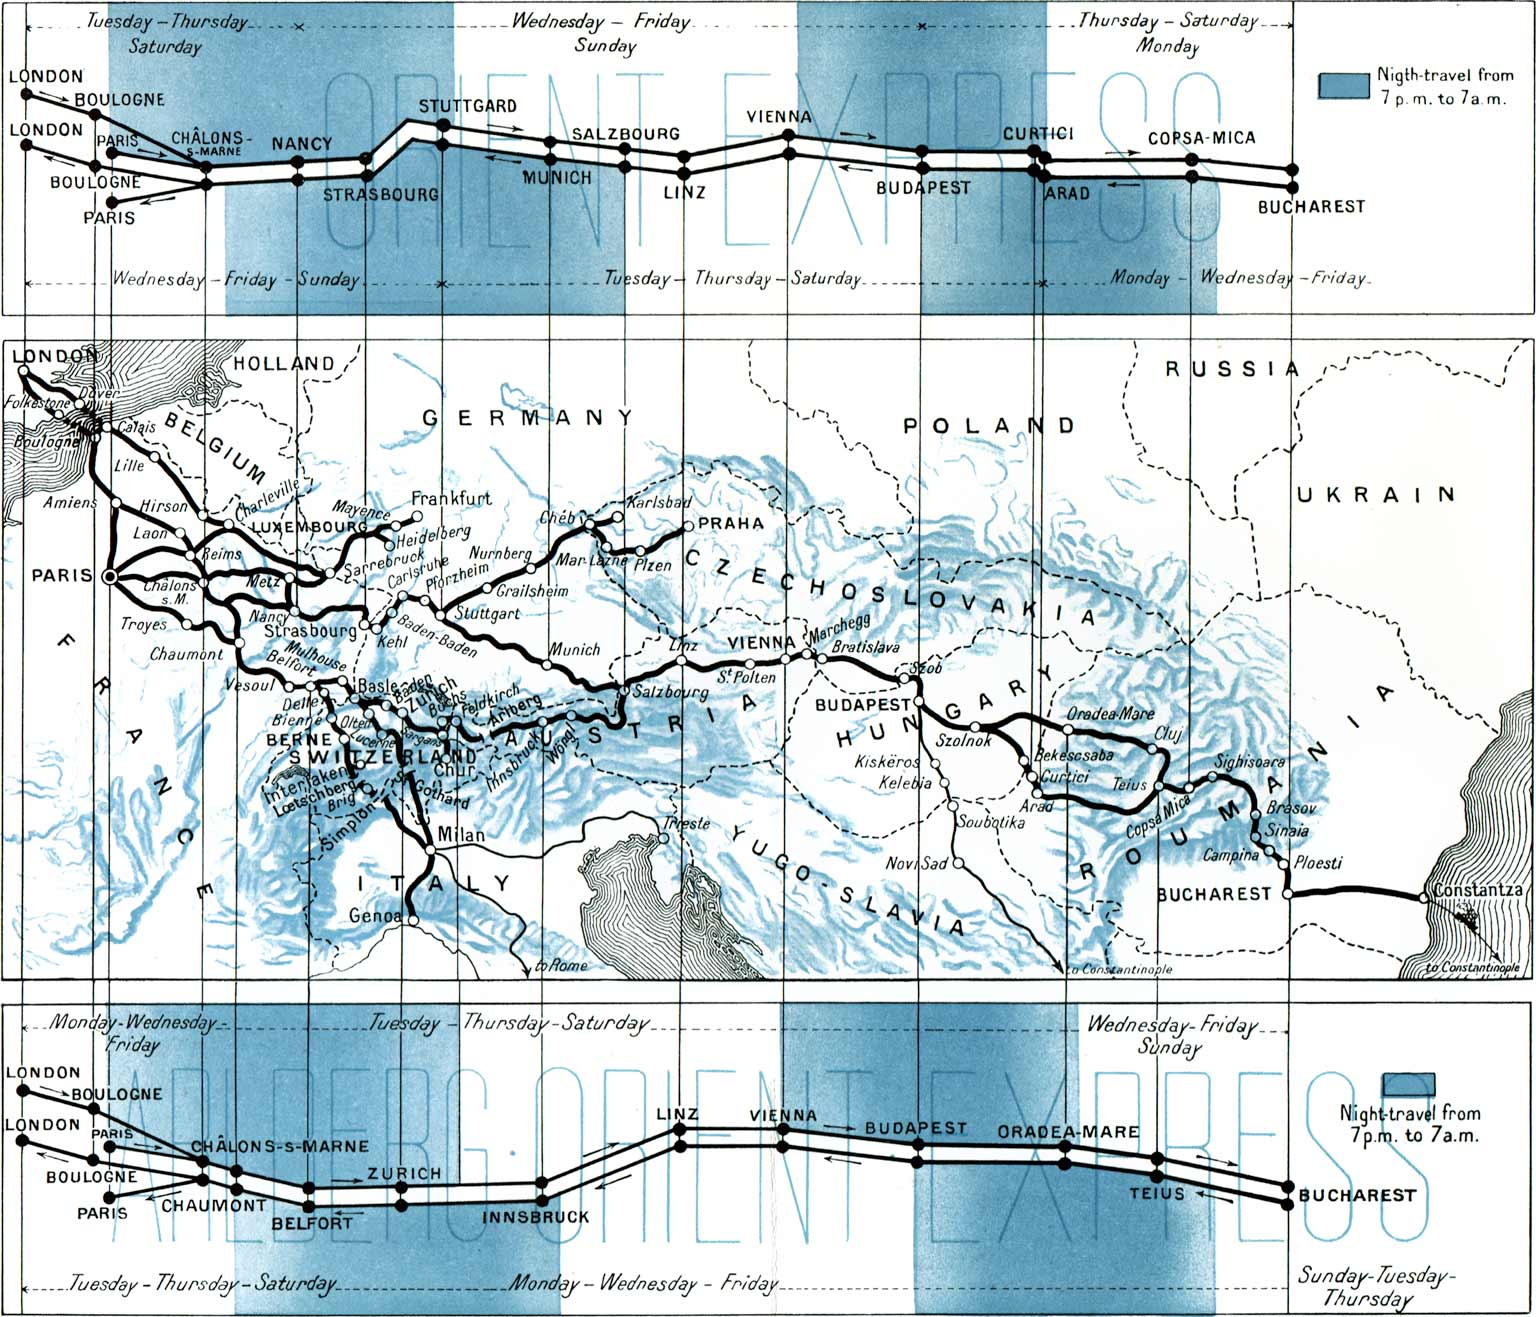 Along straight lines schematic railway maps retours